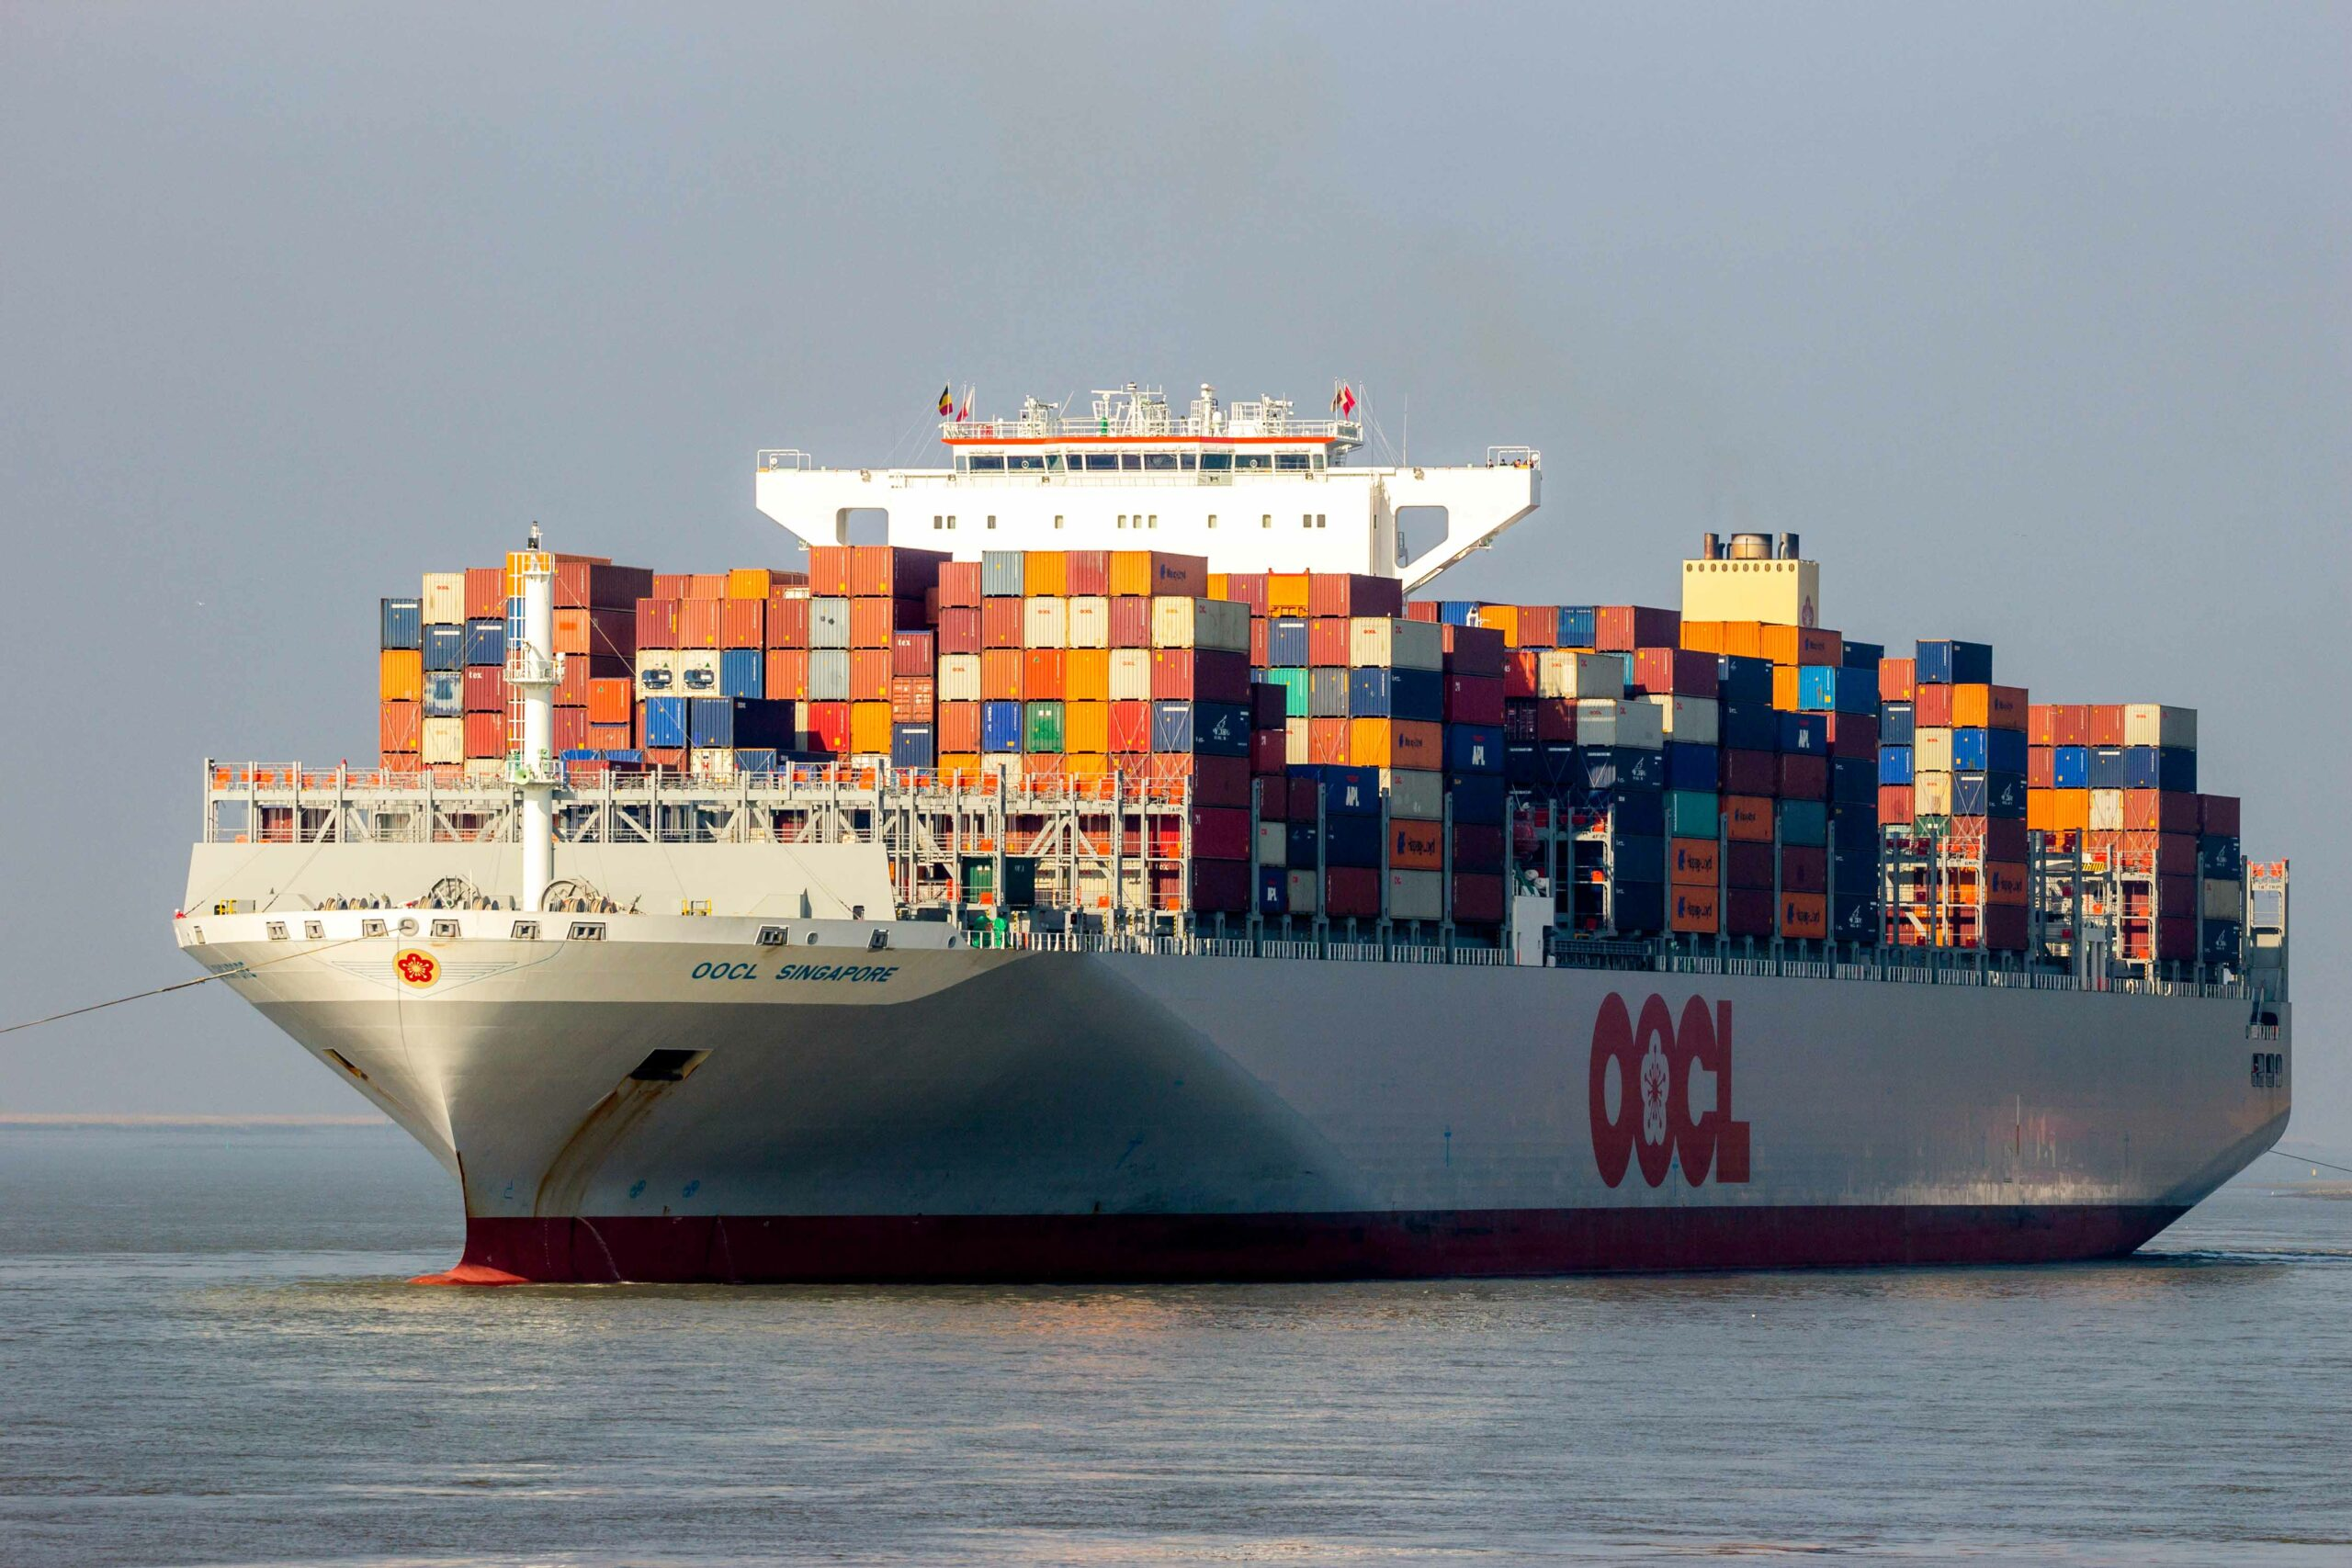 OOCL reports $ 102 million for H1 2020 1